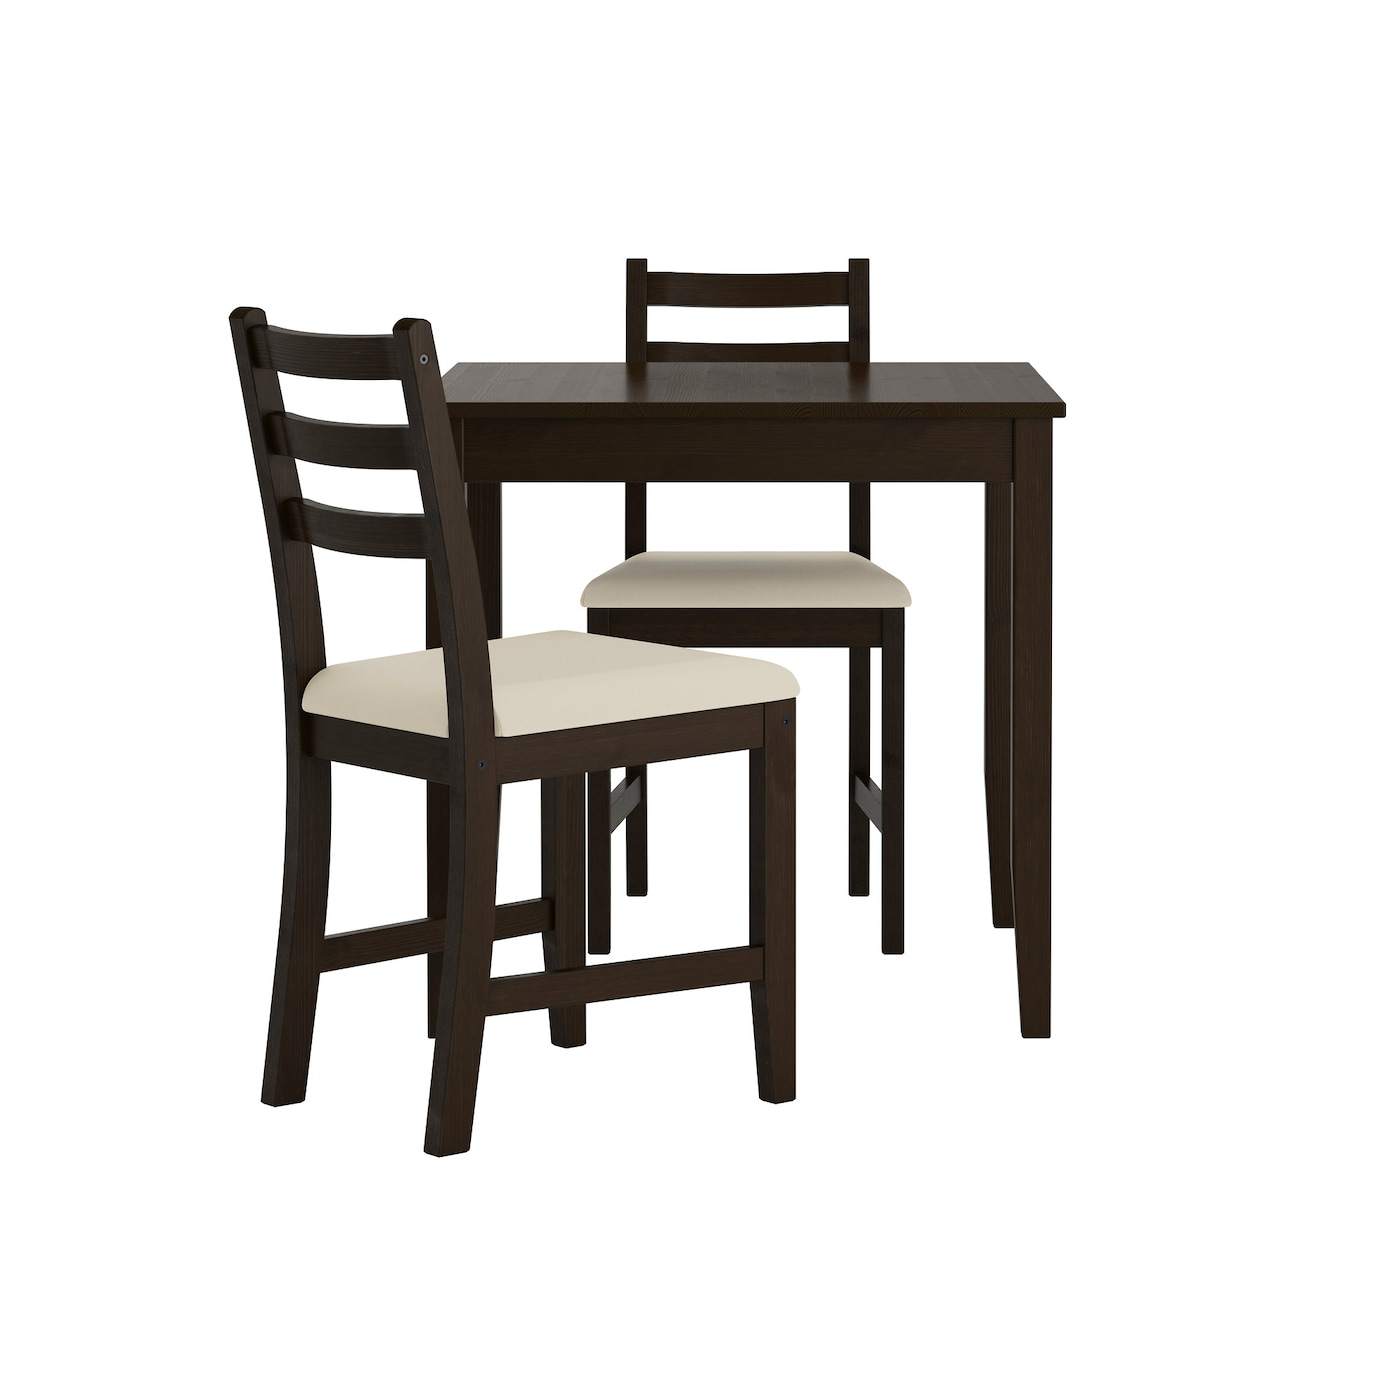 Dining Table With Bench And Chairs Were Comfortable: Dining Table Sets & Dining Room Sets